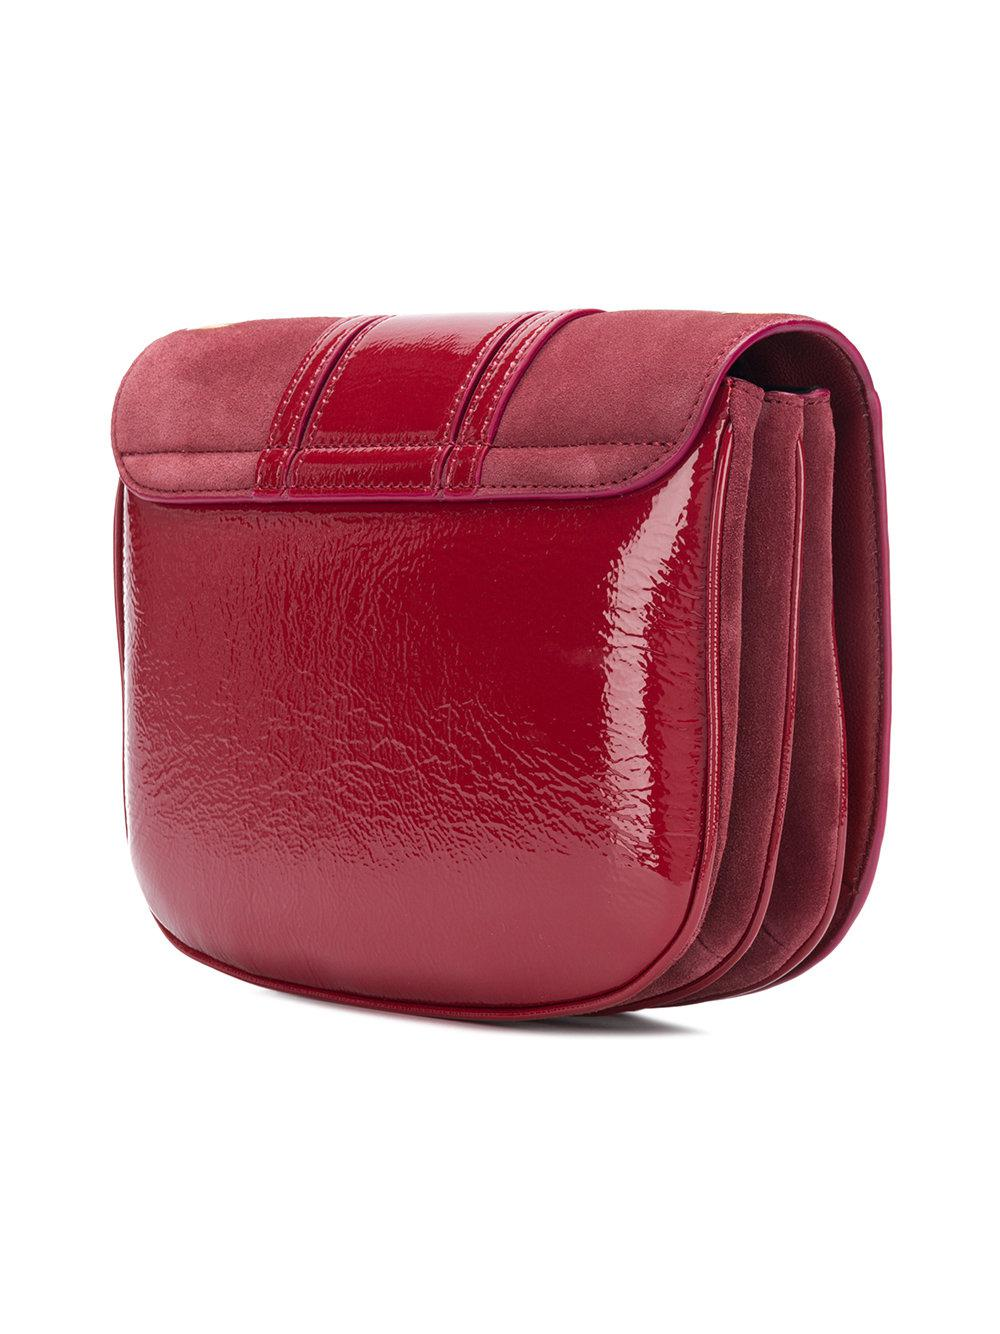 See By Chloé Leather Hana Cross Body Saddle Bag in Red